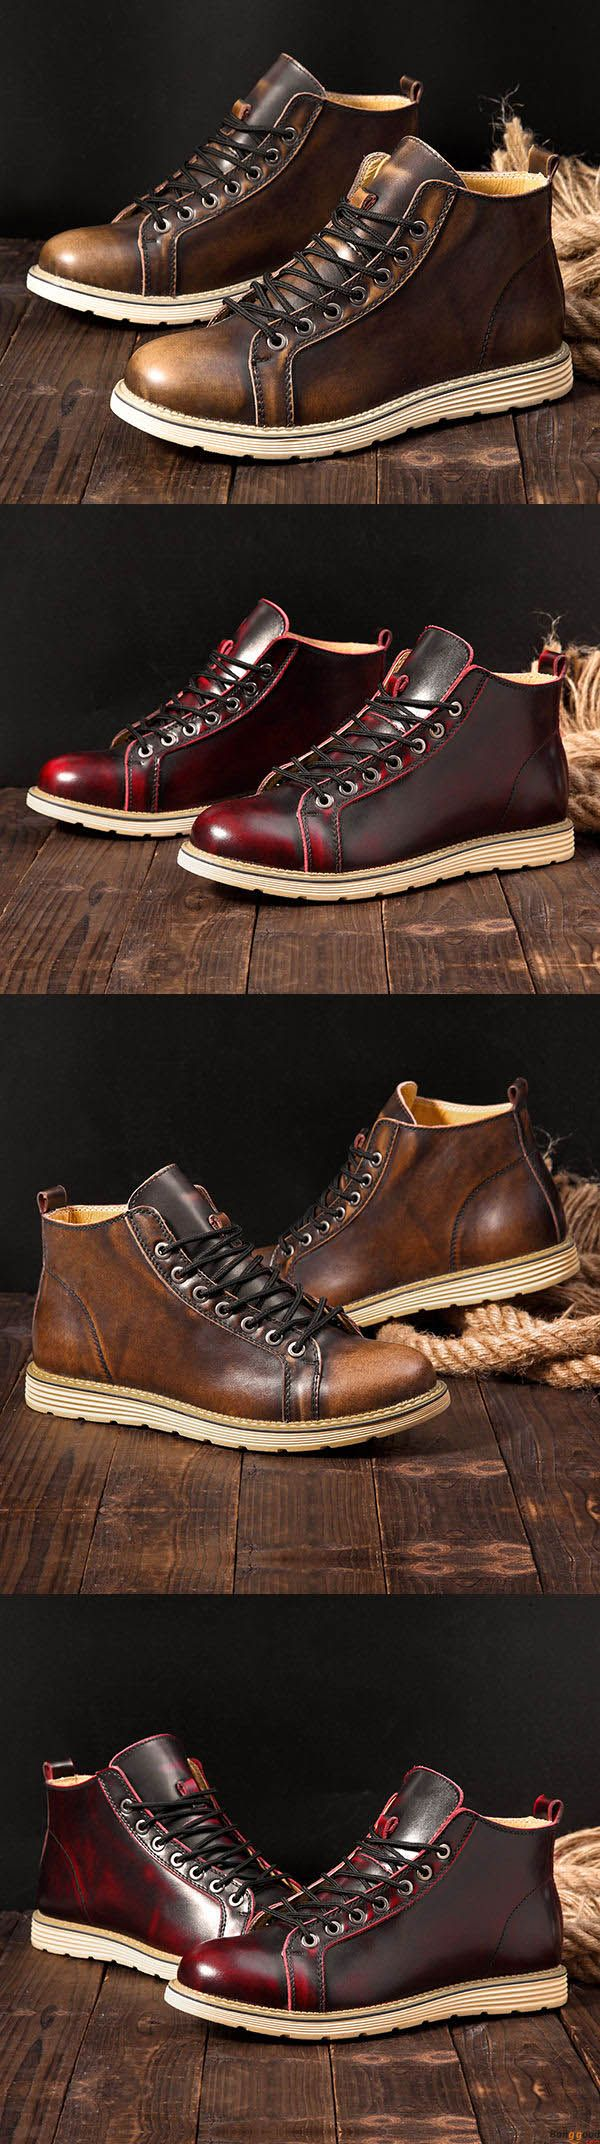 US$59.99 + Free Shipping. 3 colors available. Men Leather Lace Up Casual Outdoor Short Boots. Men formal shoes, short boots, casual comfortable shoes, oxford shoes, boots, Fashion and chic, casual shoes, men's flats, oxford boots,leather short boots,